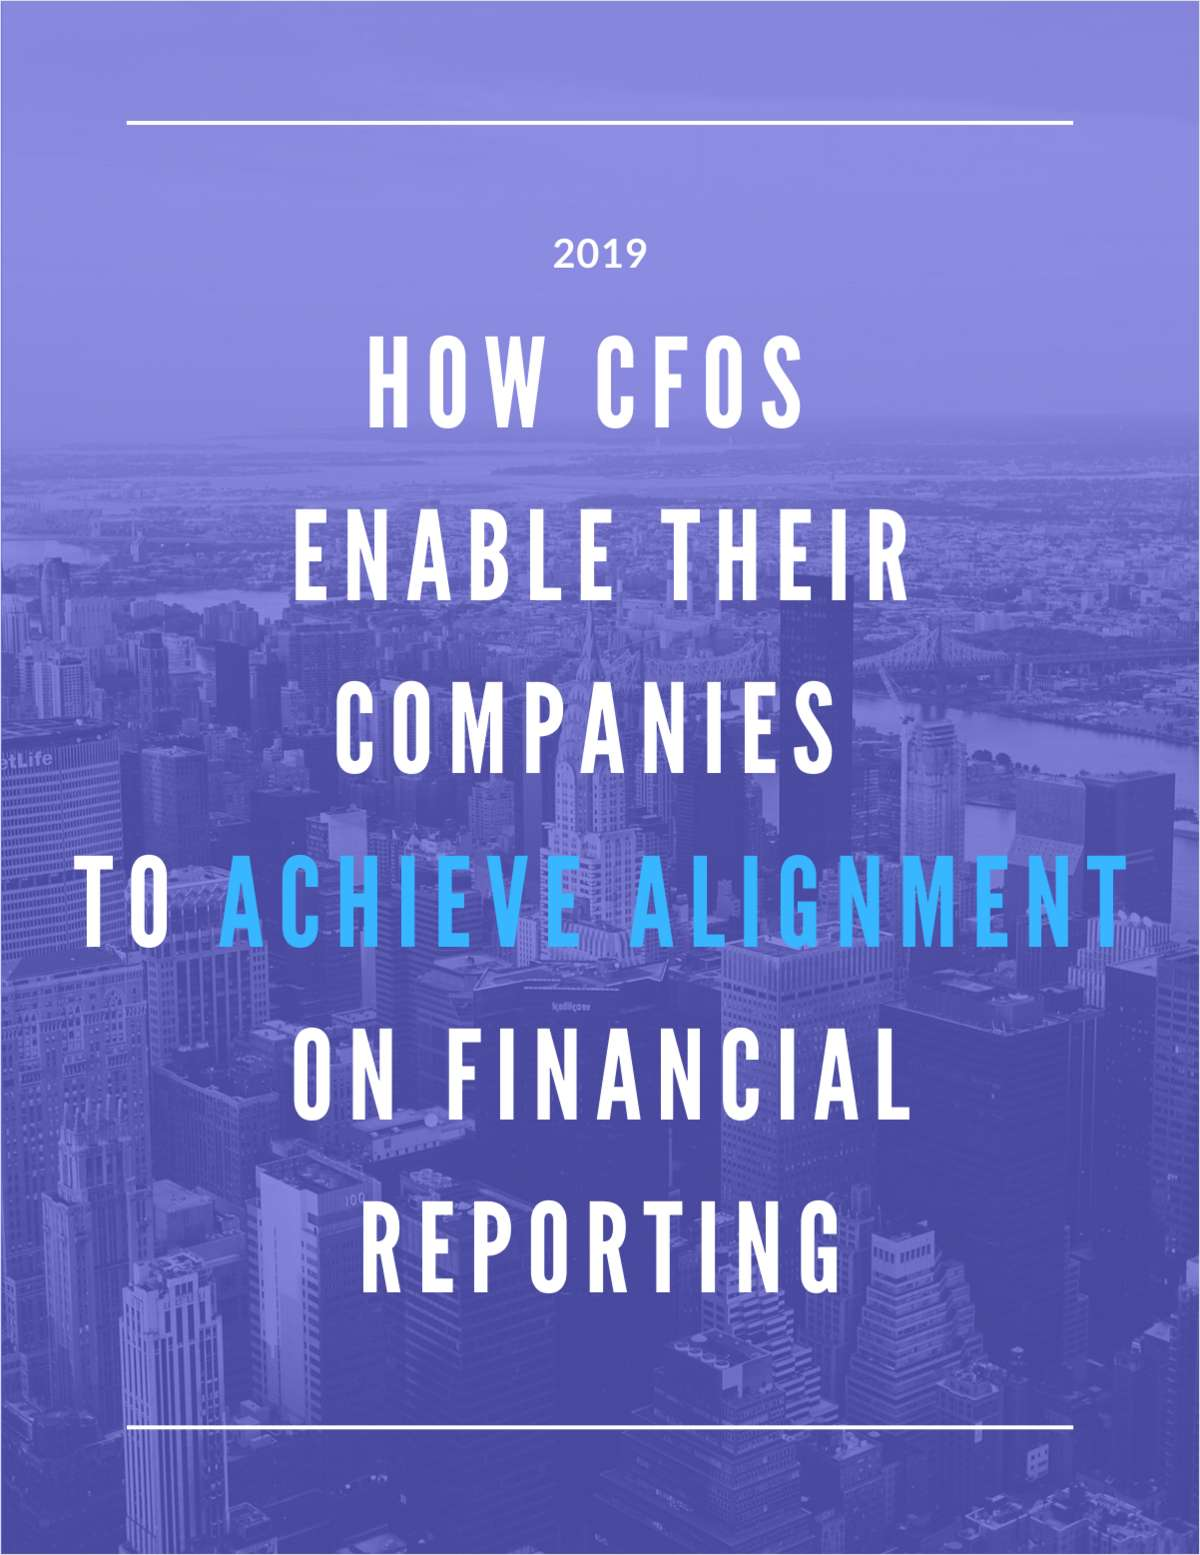 How CFOs Enable Their Companies to Achieve Alignment on Financial Reporting